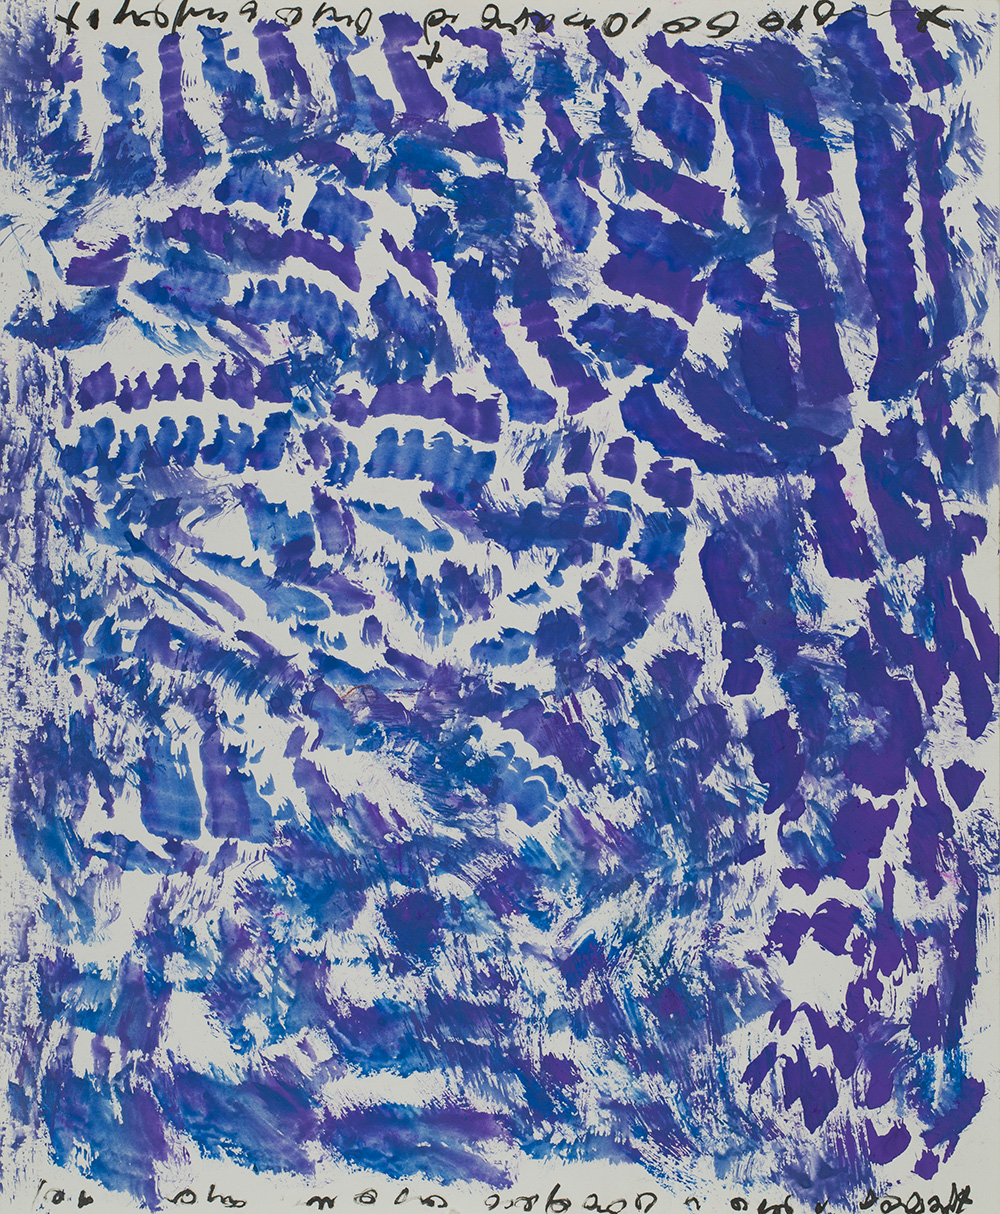 J.B. Murray  Untitled  , c. 1978-1988 Tempera, marker on paper 17 x 14 inches 43.2 x 35.6 cm JBM 120